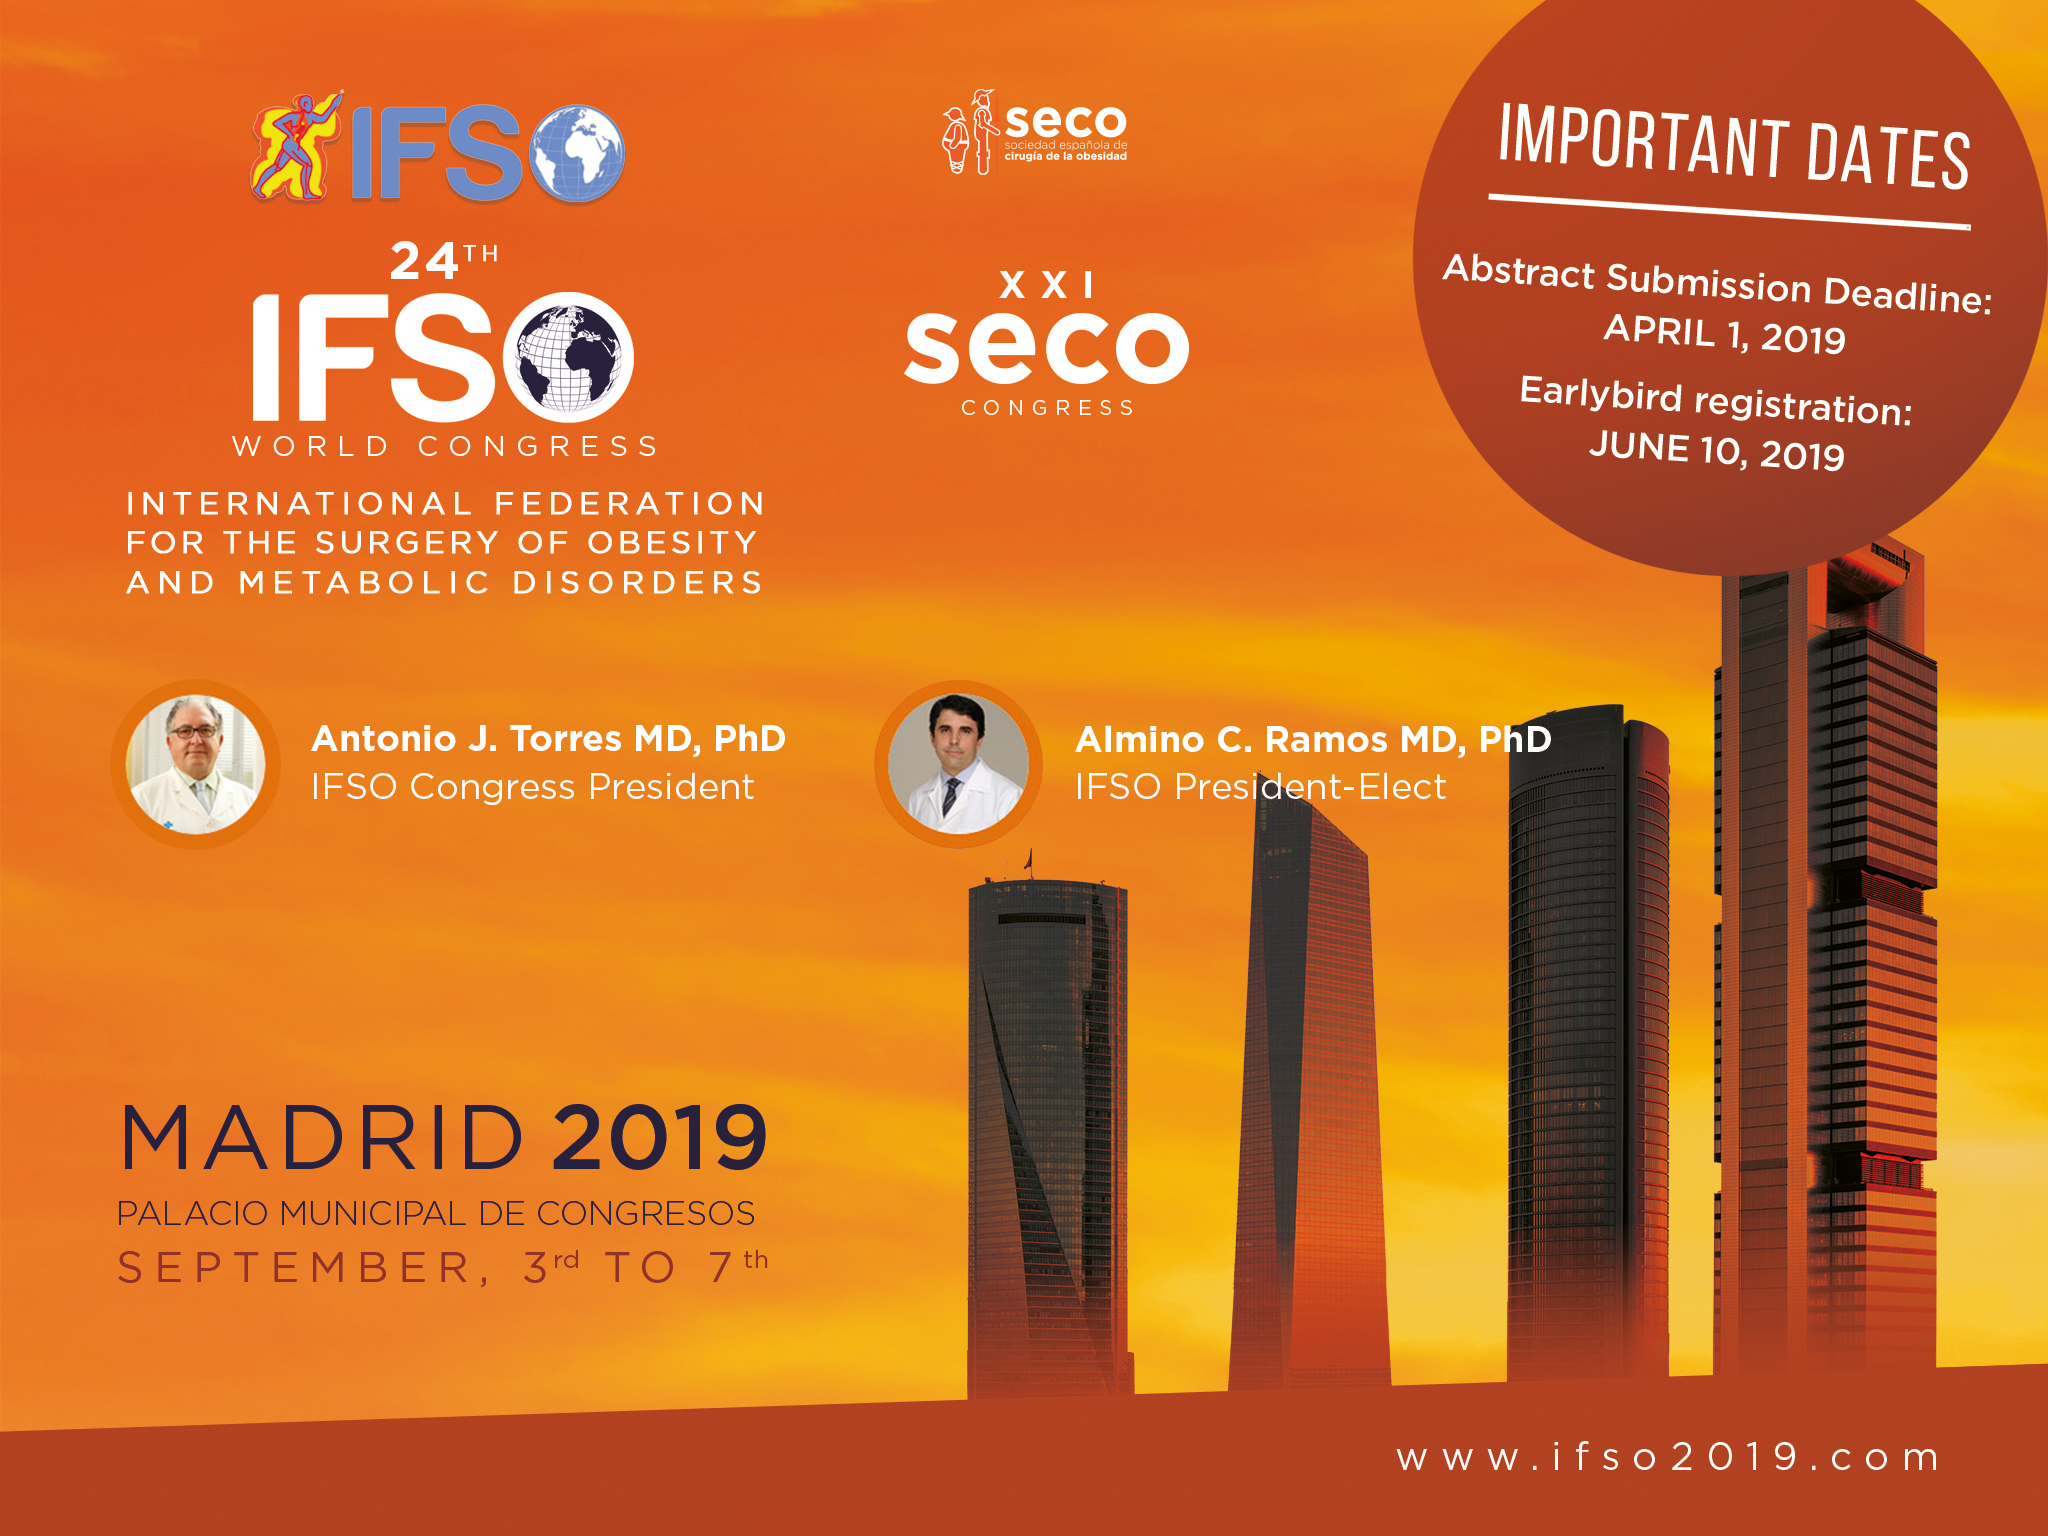 IFSO 2019 MADRID e flyer